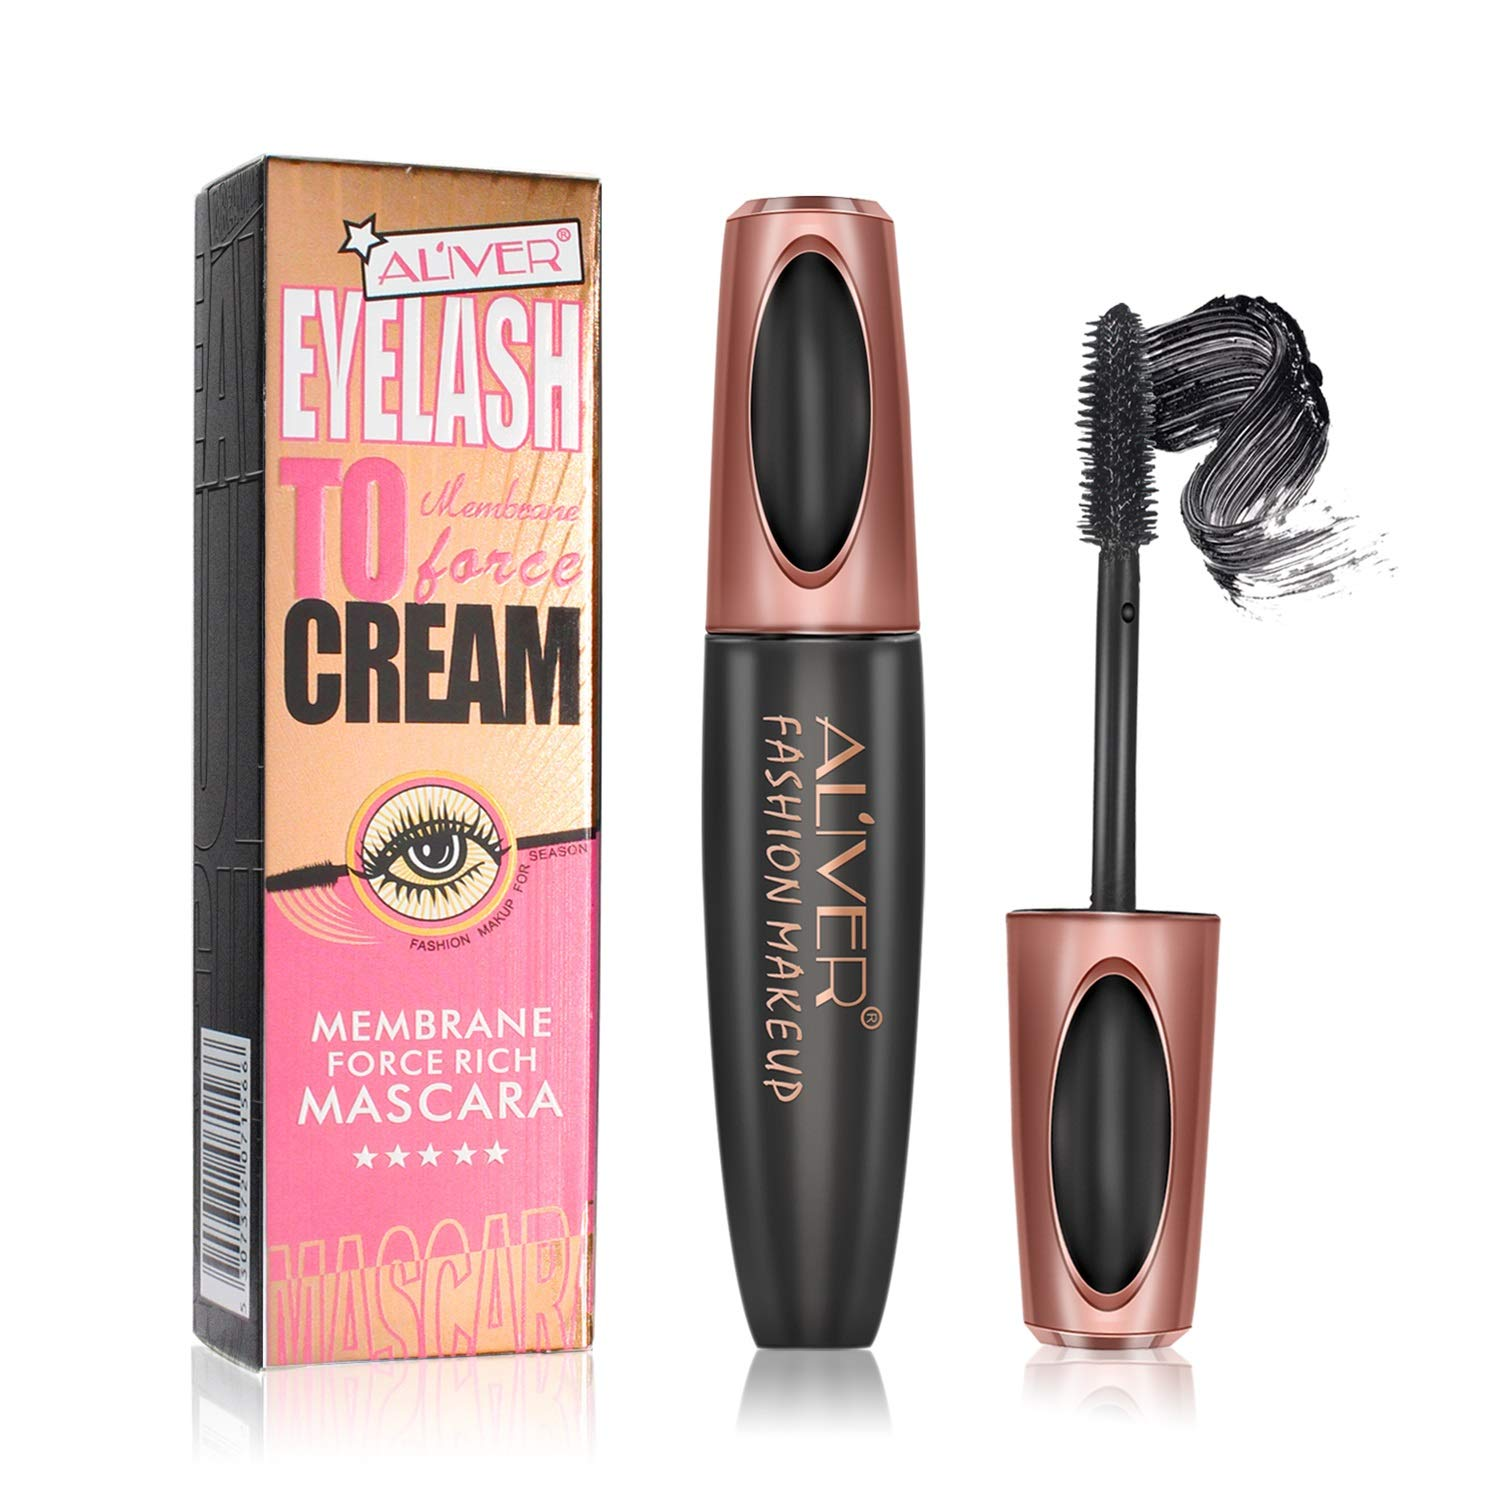 Mascara, Aliver Dazzle Rich Black Mascara with 3D Brush Head for Eyelash Nourishing